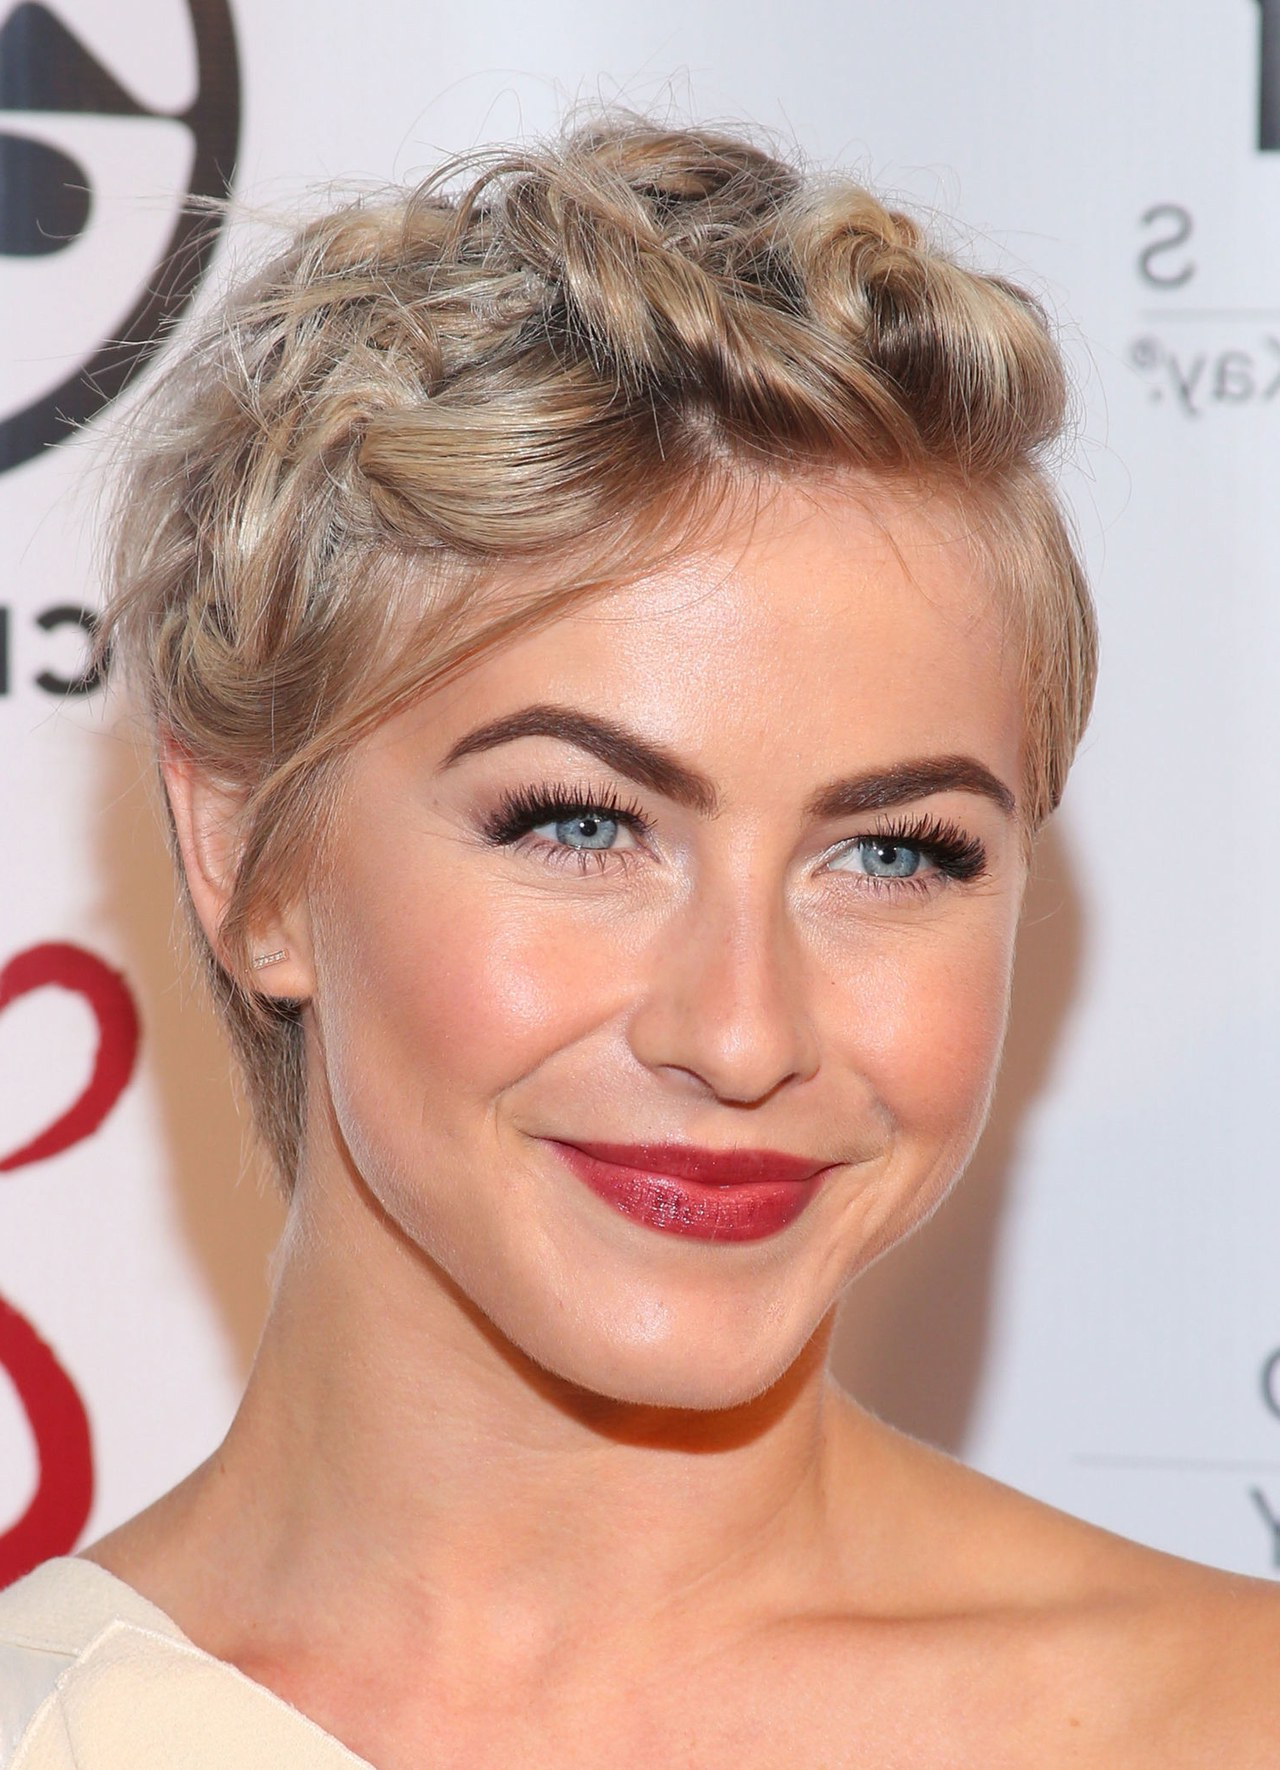 Julianne Hough Shows A Cute Hairstyle Option For Short Hair For In Cute Hairstyles For Short Hair For A Wedding (View 18 of 25)